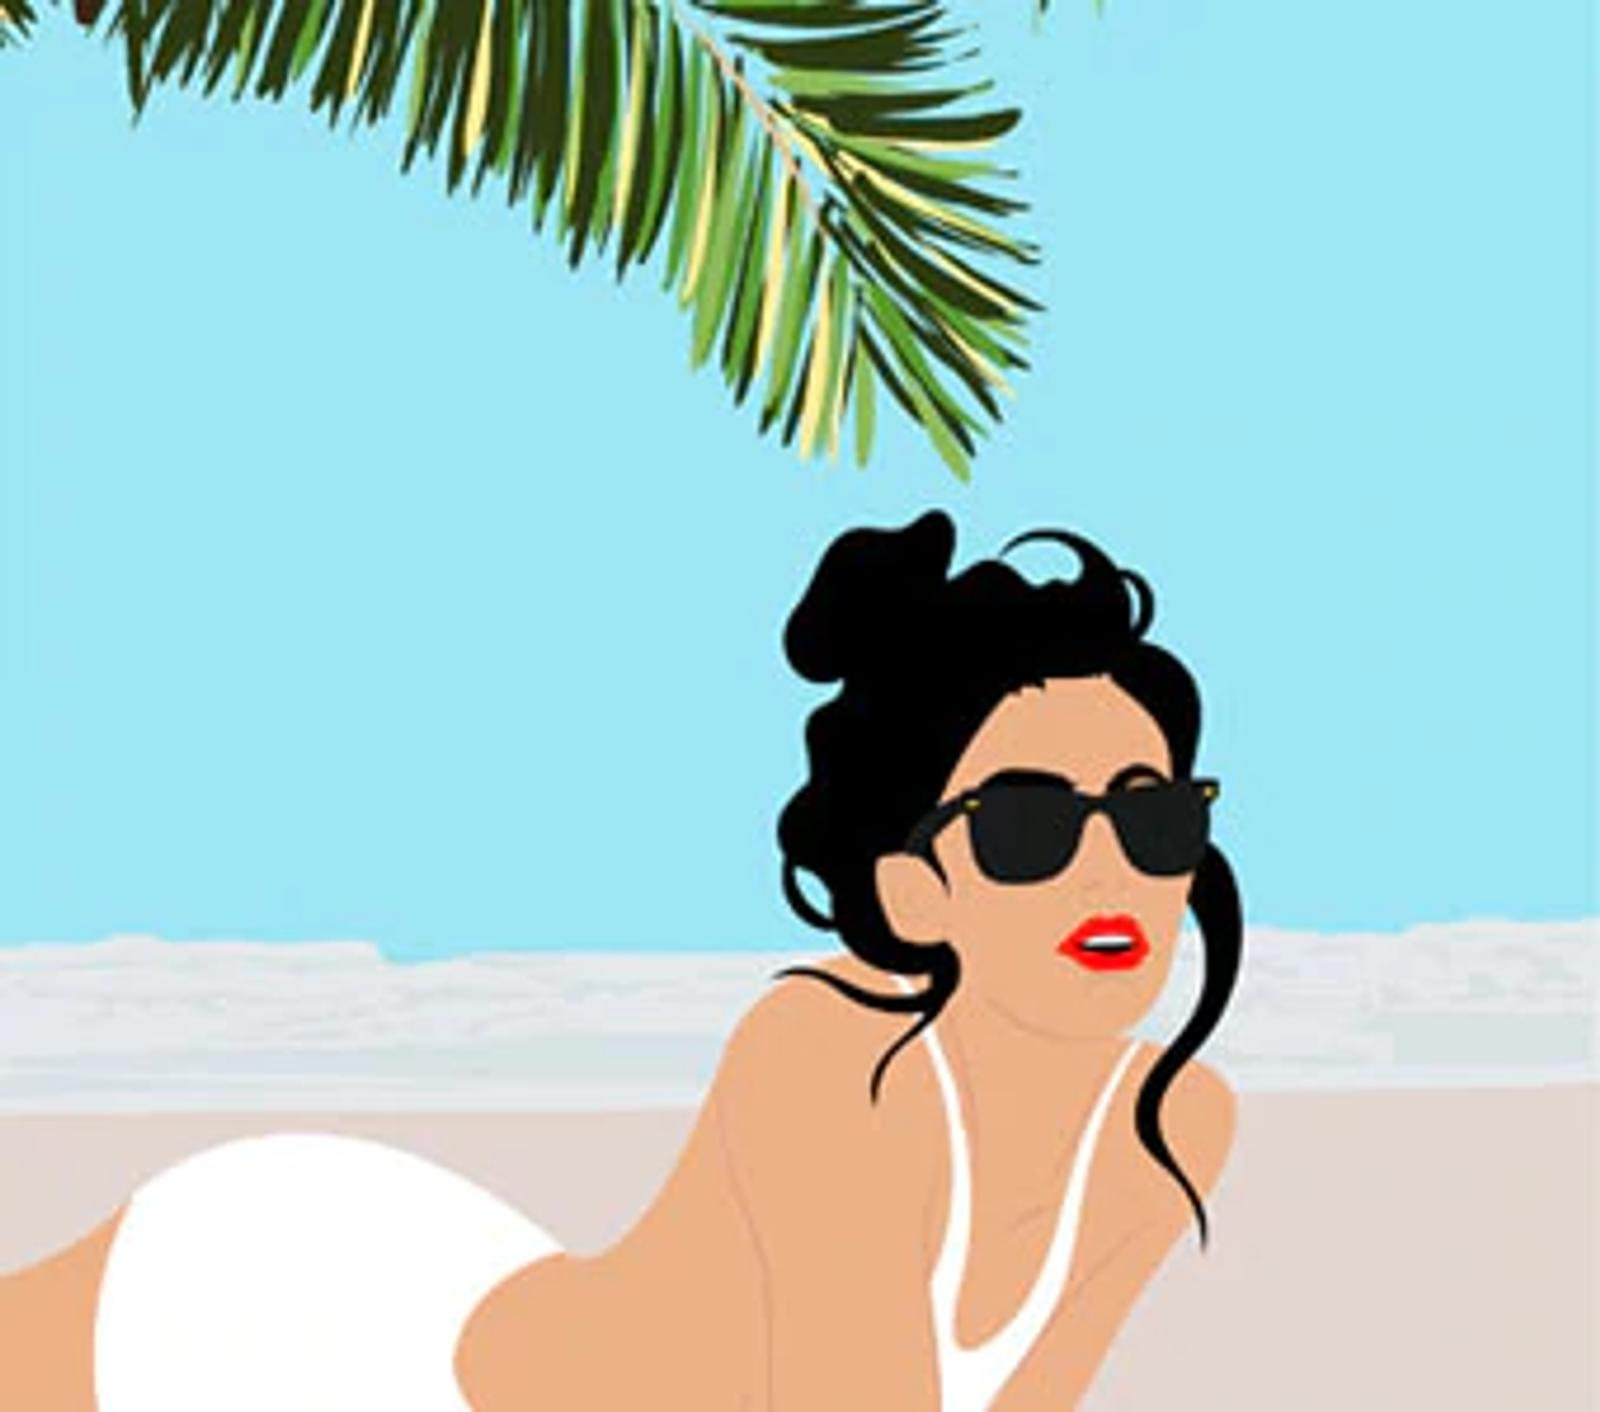 Illustration of Woman Lying on Beach